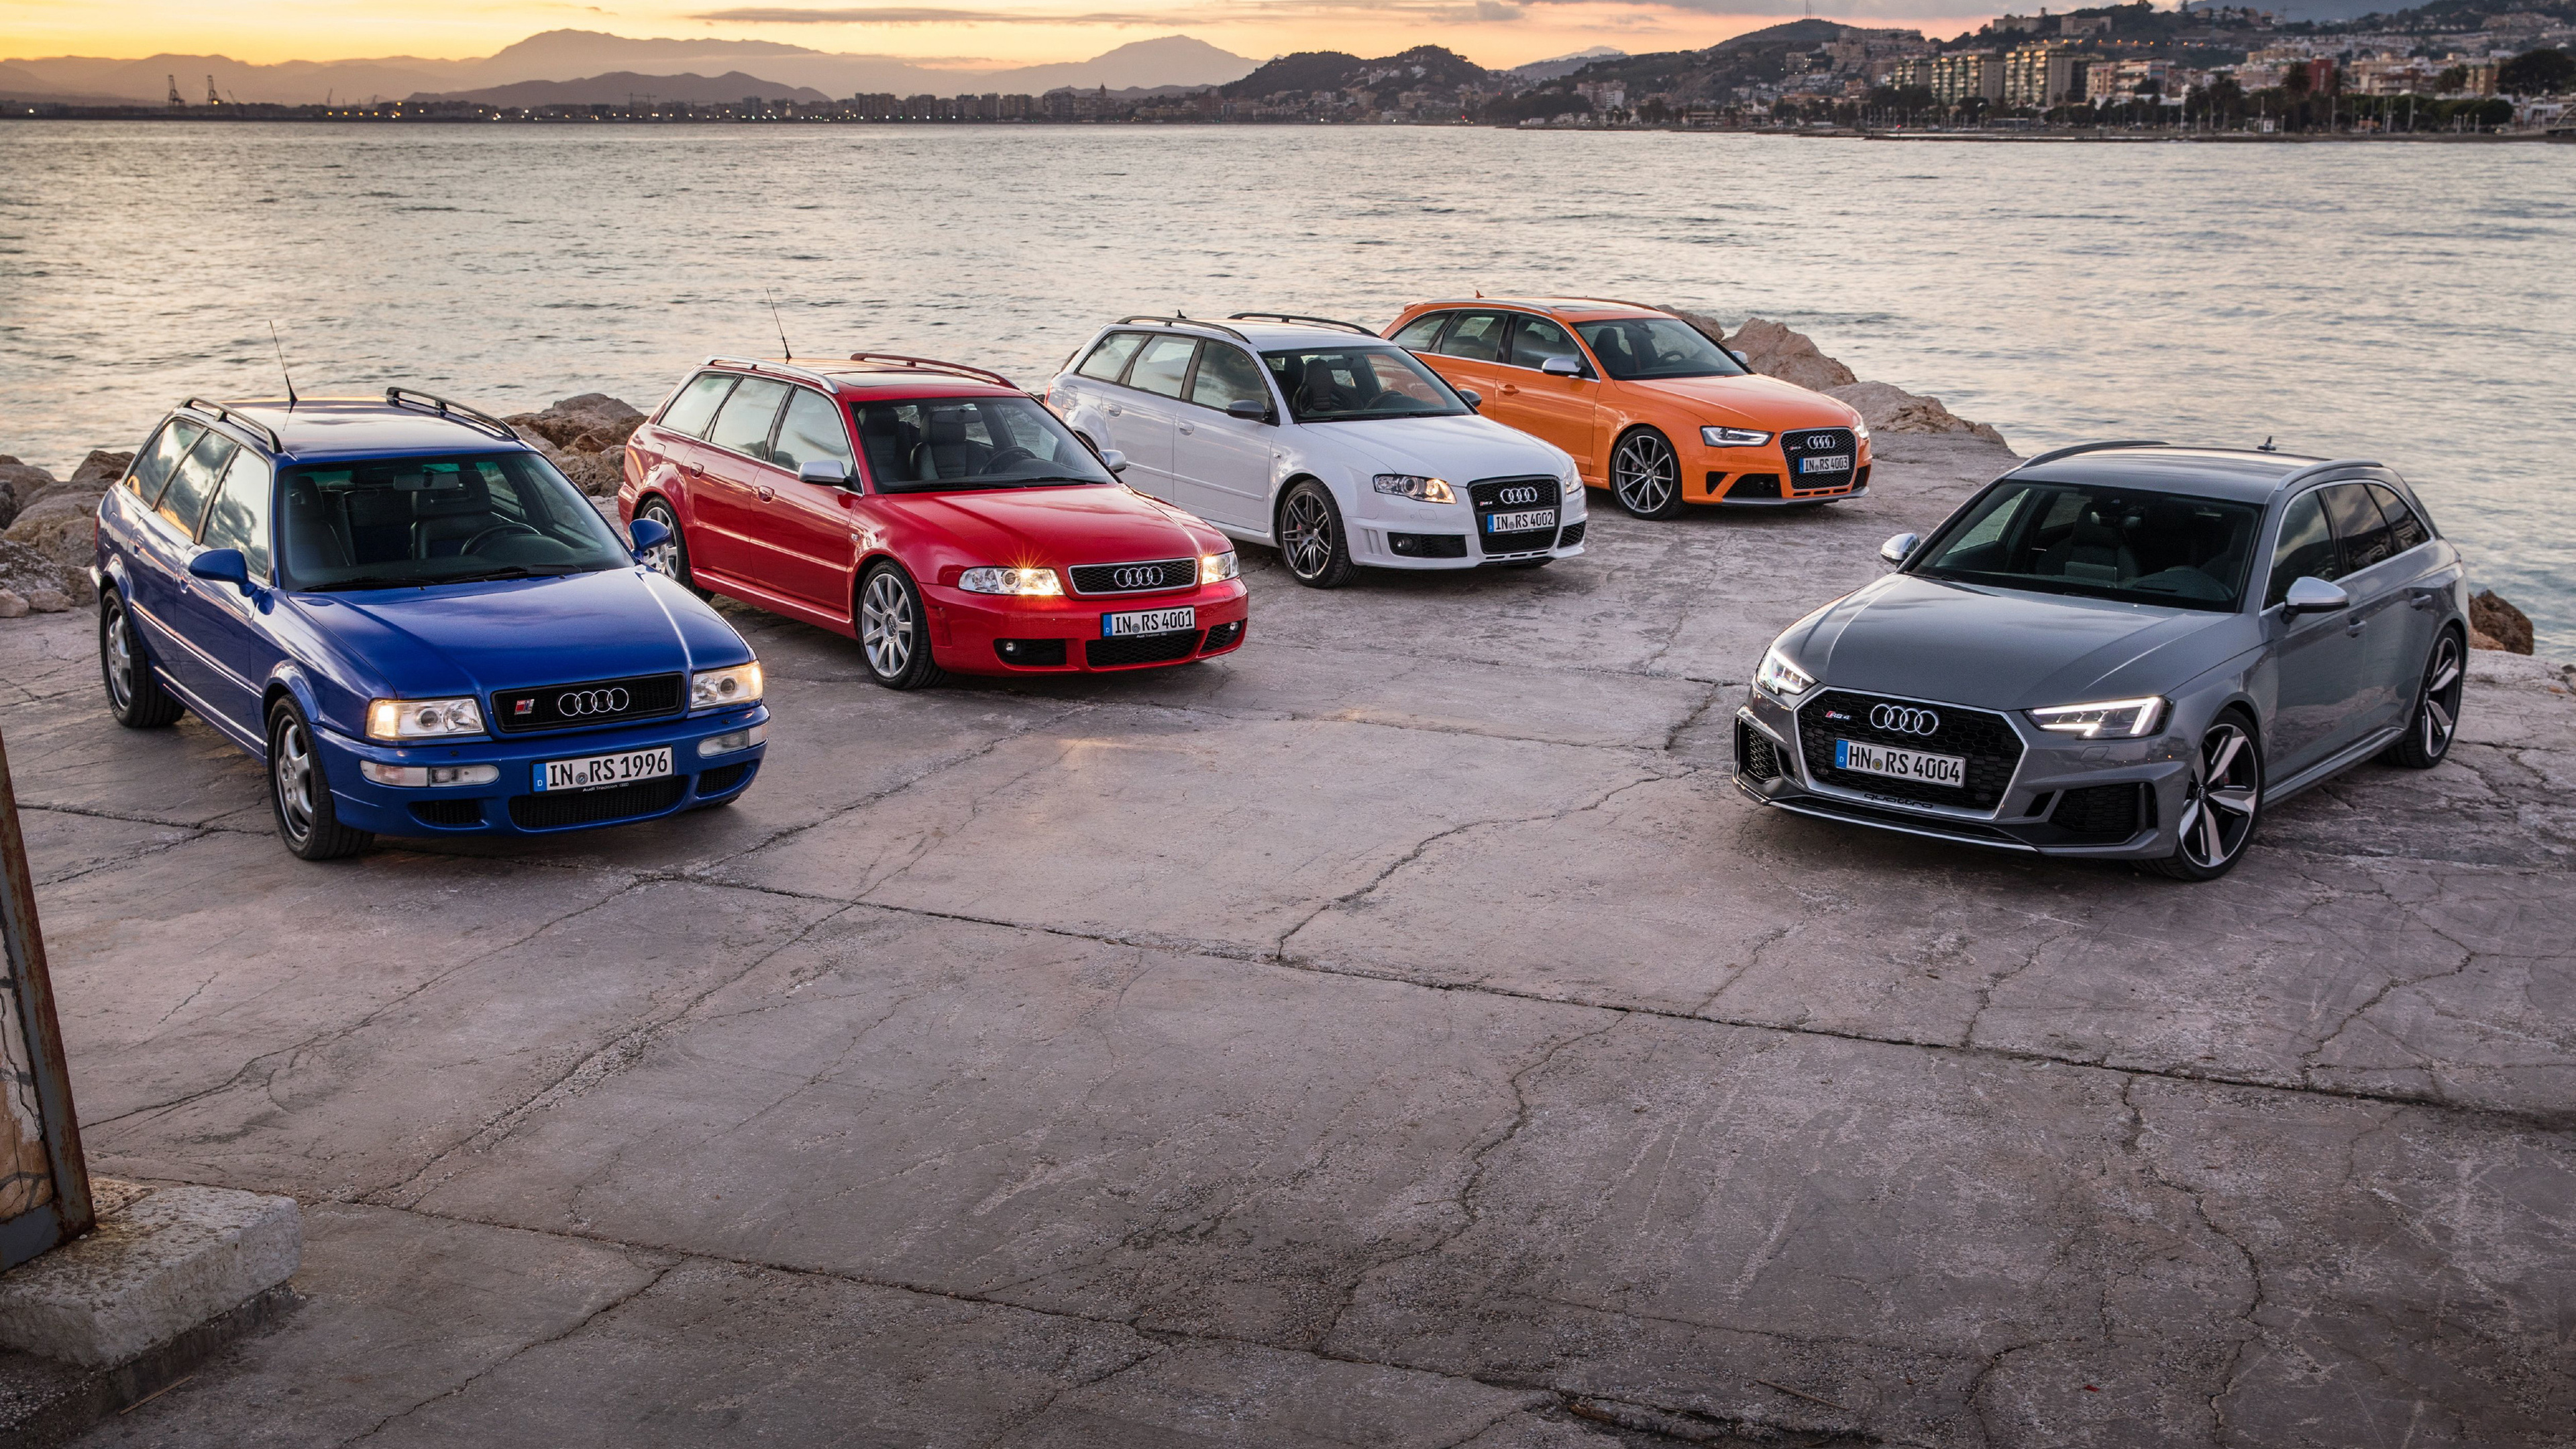 audi rs2 rs4 all editions 1539108686 - Audi Rs2 Rs4 All Editions - hd-wallpapers, cars wallpapers, audi wallpapers, audi rs4 wallpapers, audi rs2 wallpapers, 4k-wallpapers, 2017 cars wallpapers